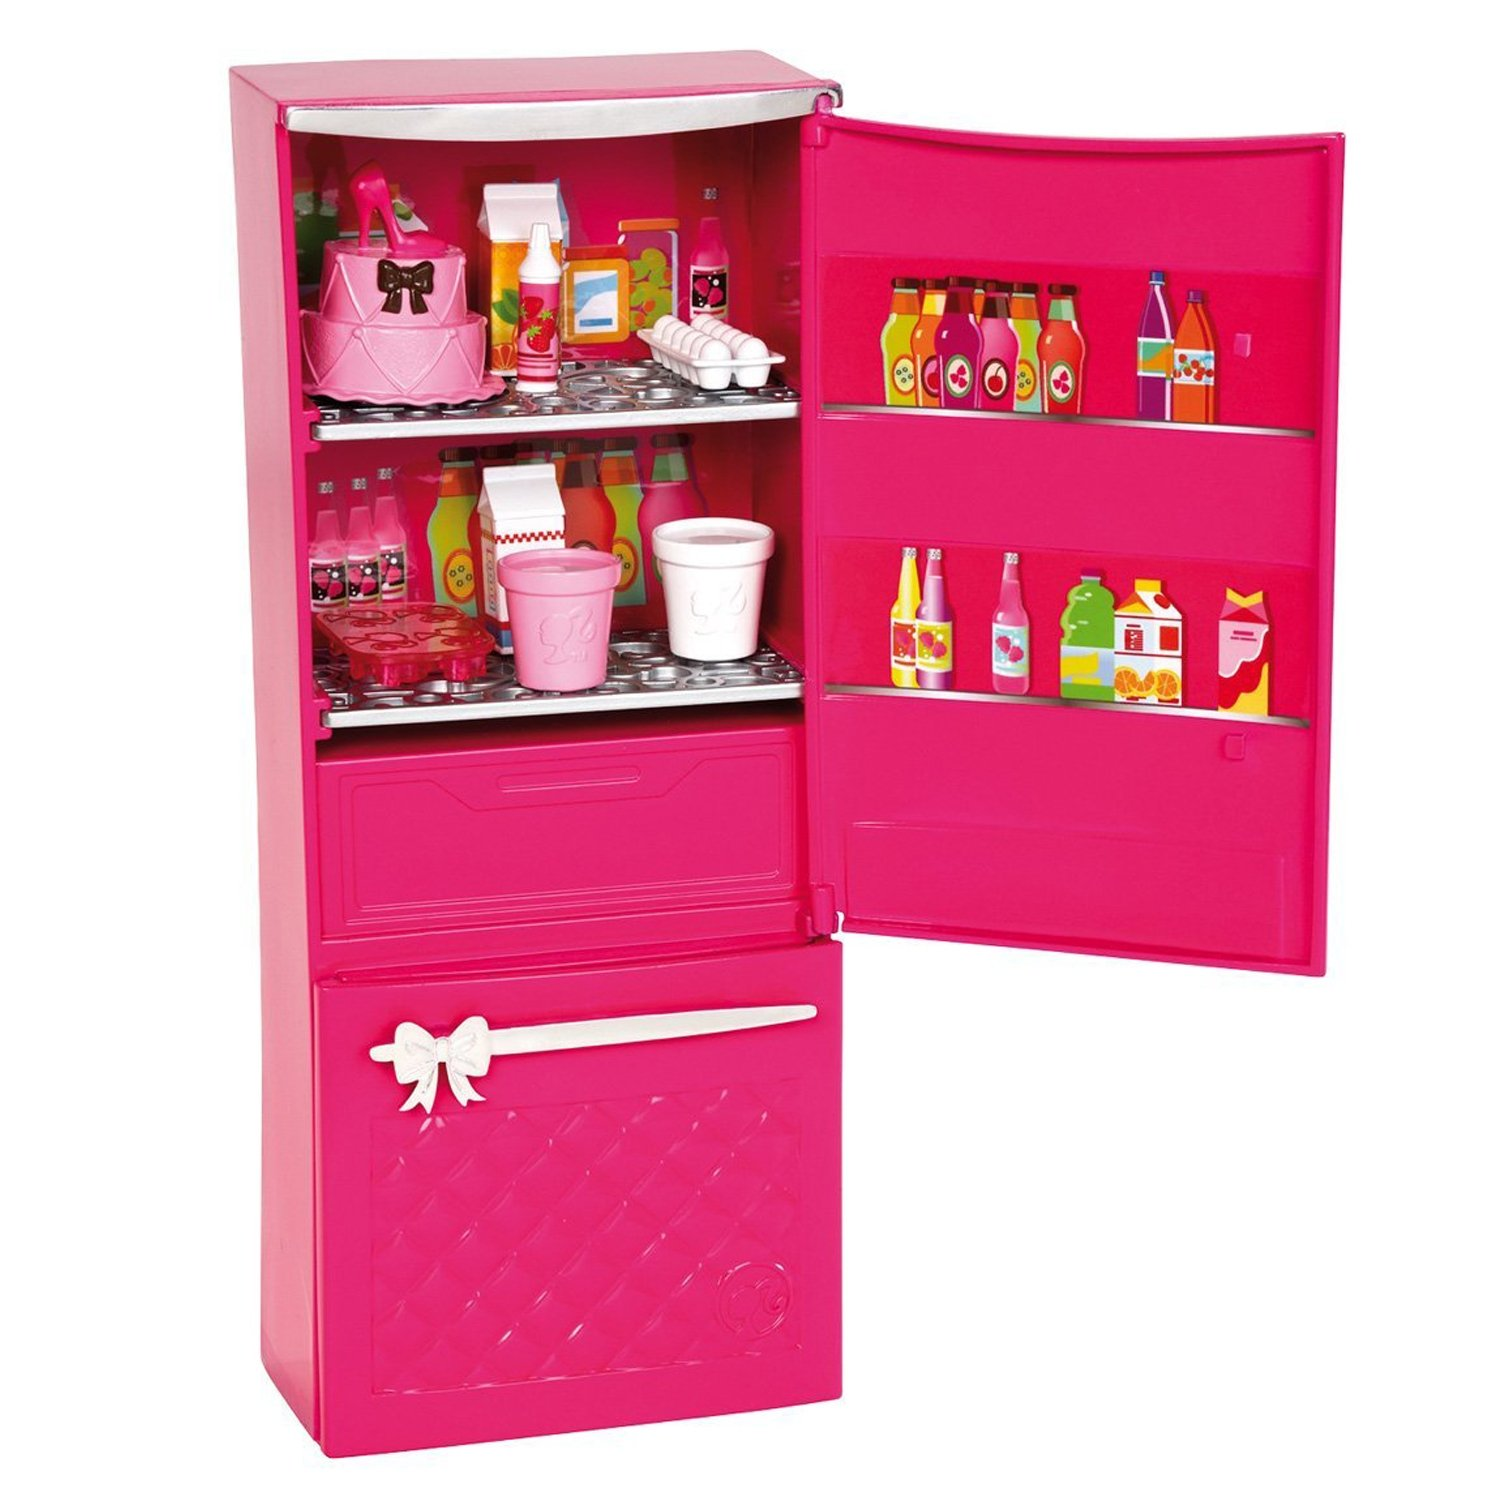 Barbie Glam Refrigerator Food & Accessories Set